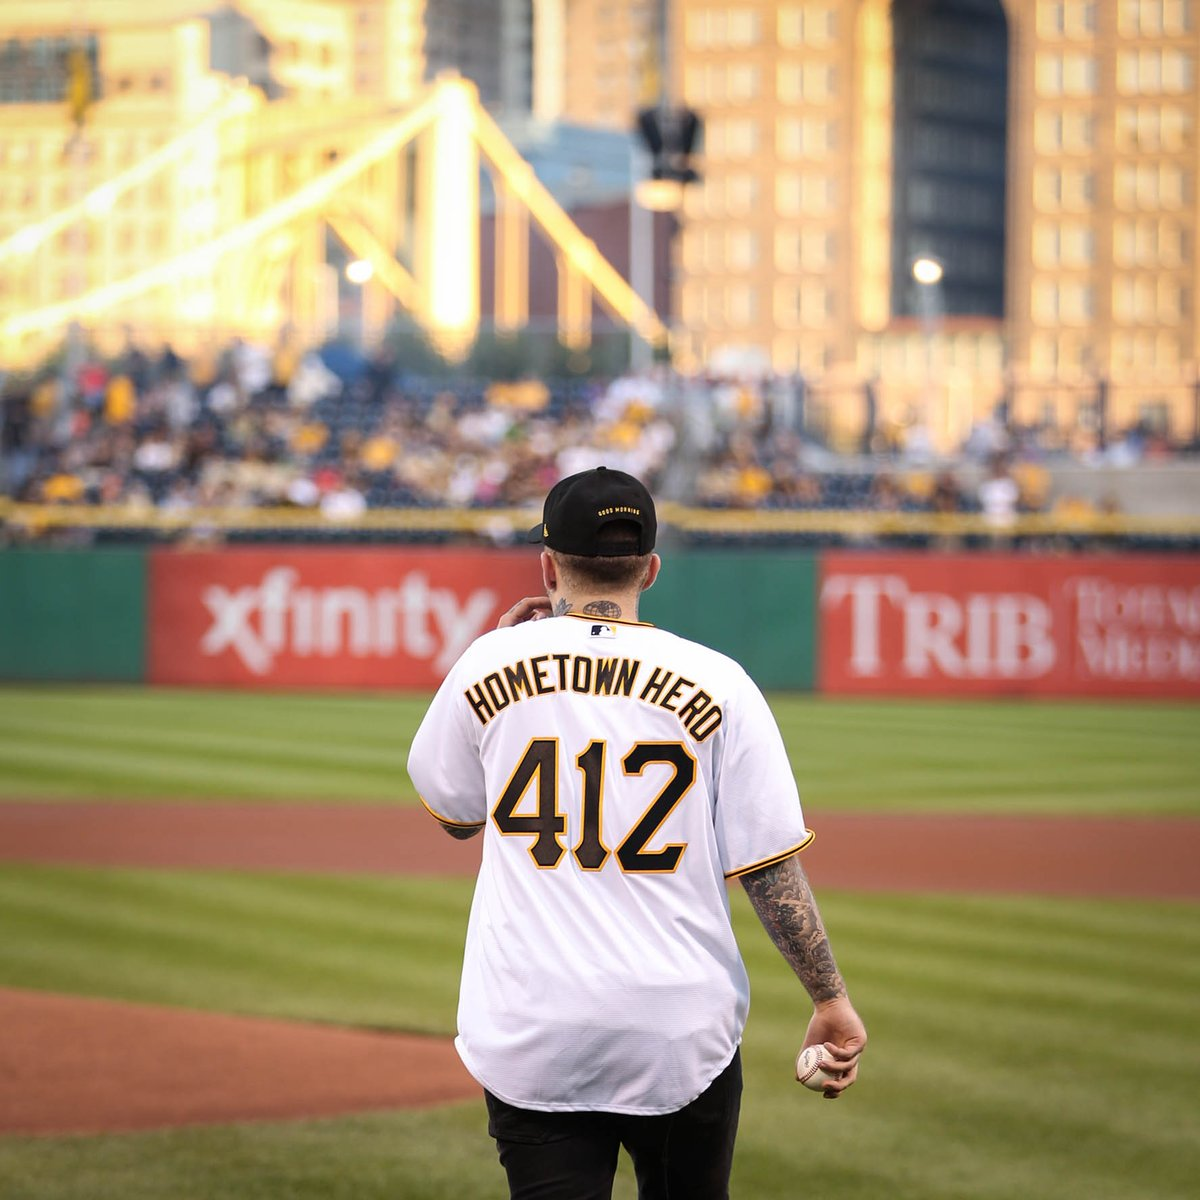 Mac Miller at a Pittsburgh Pirates baseball game at PNC Park.